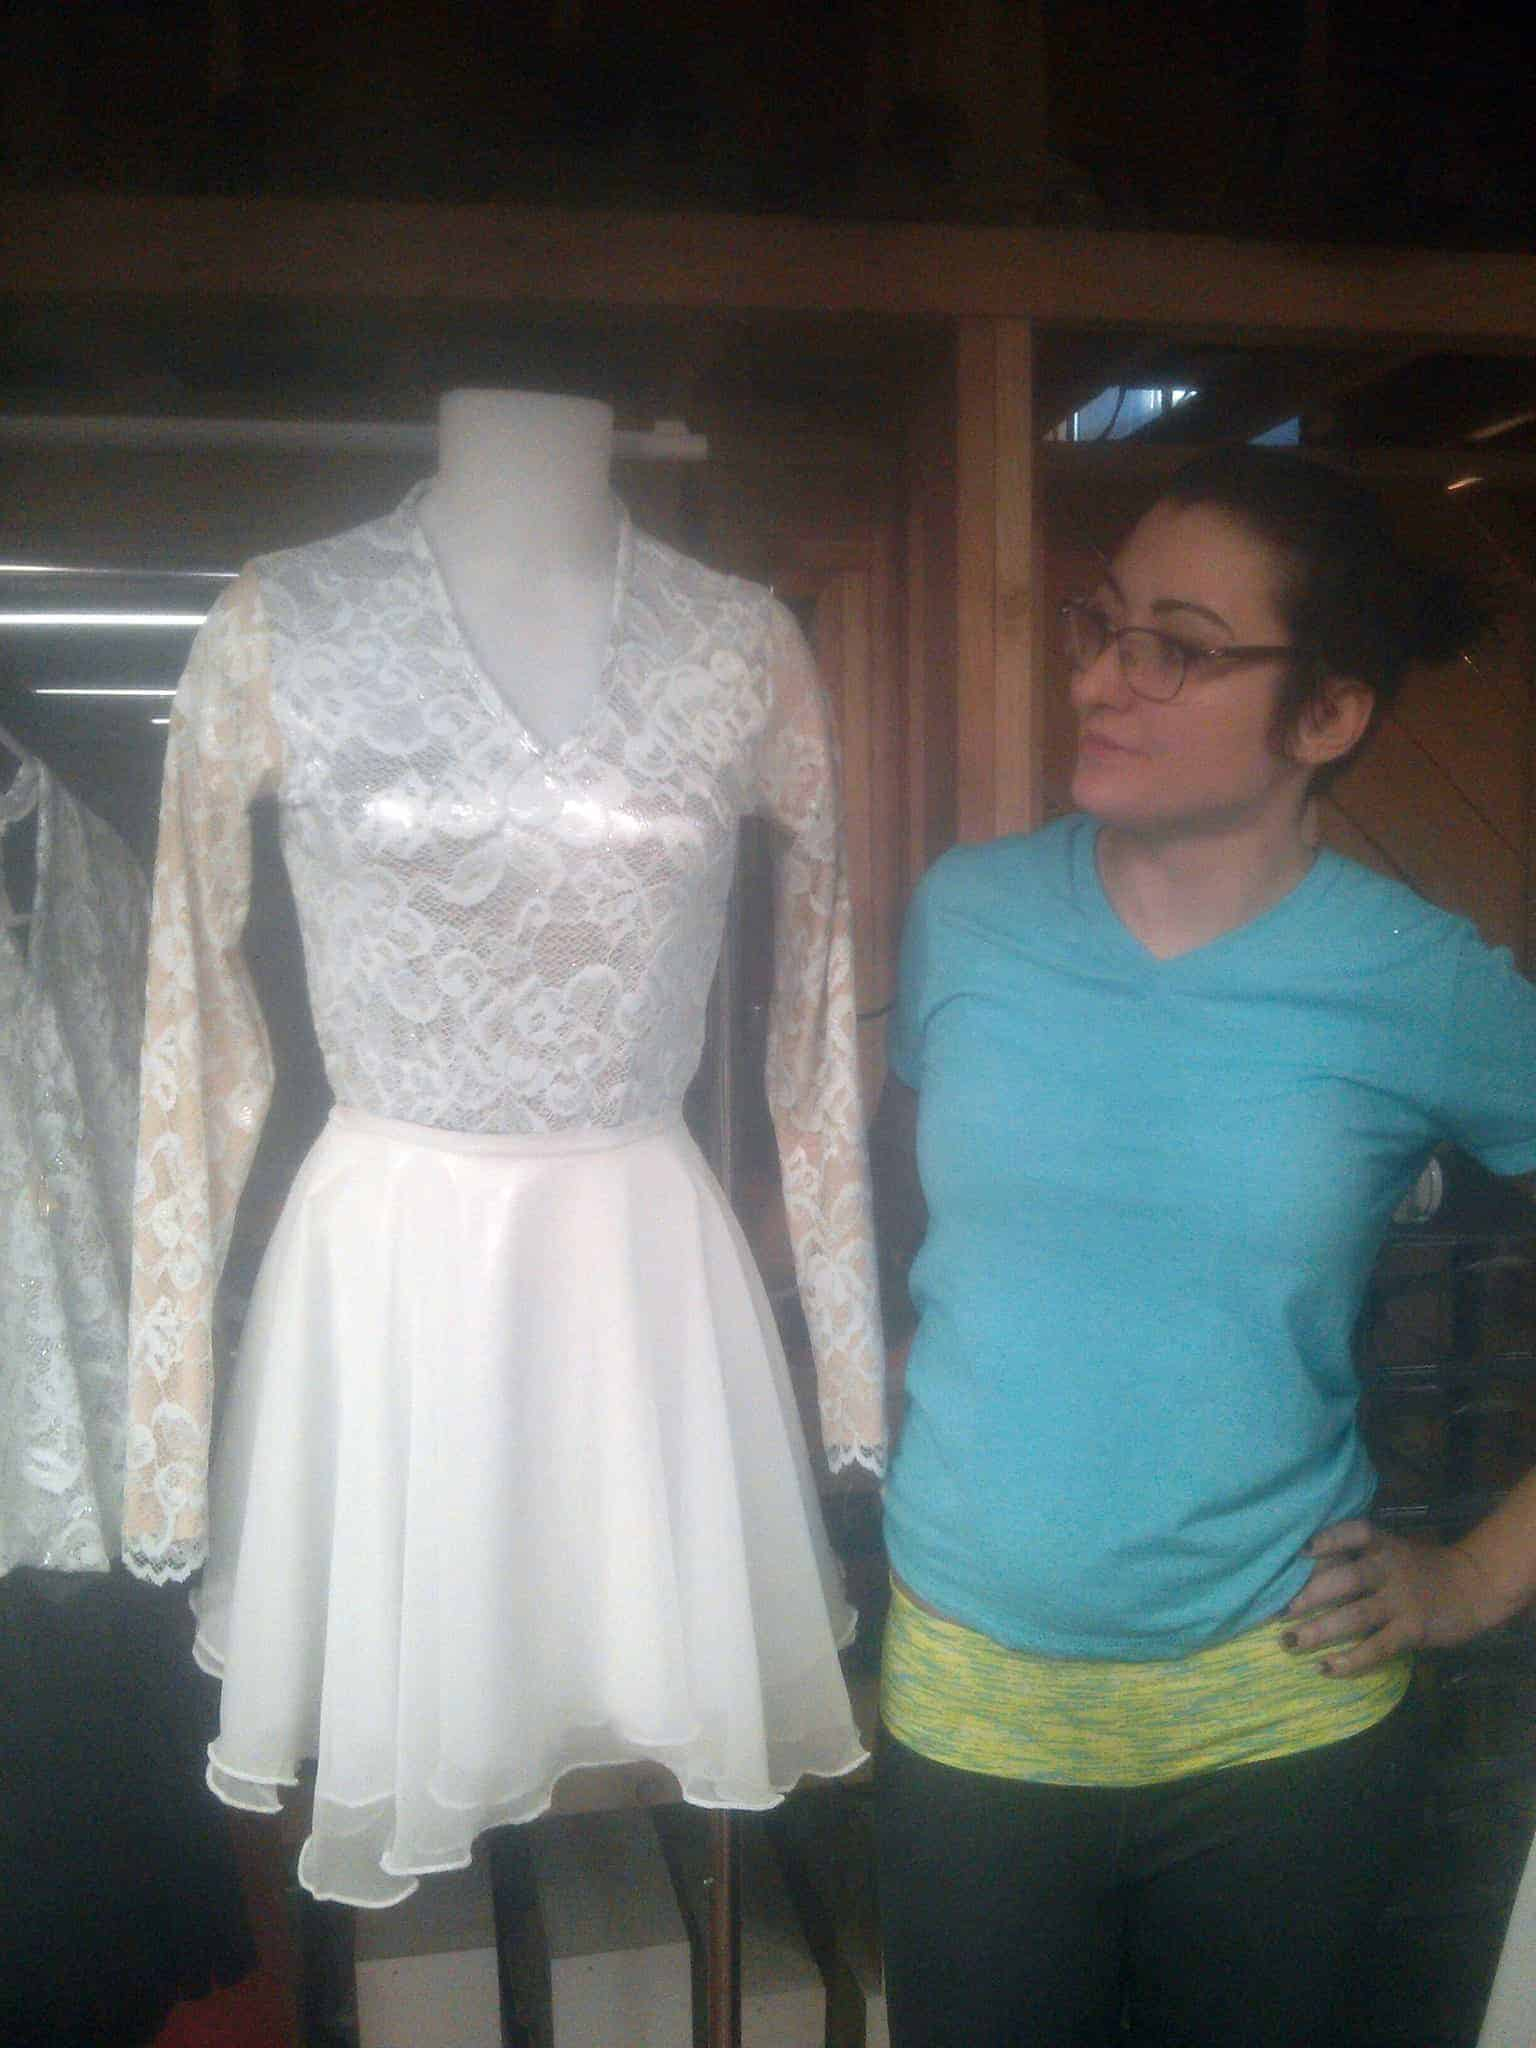 byu_irish_dance_costumes13_mcgrew_studios